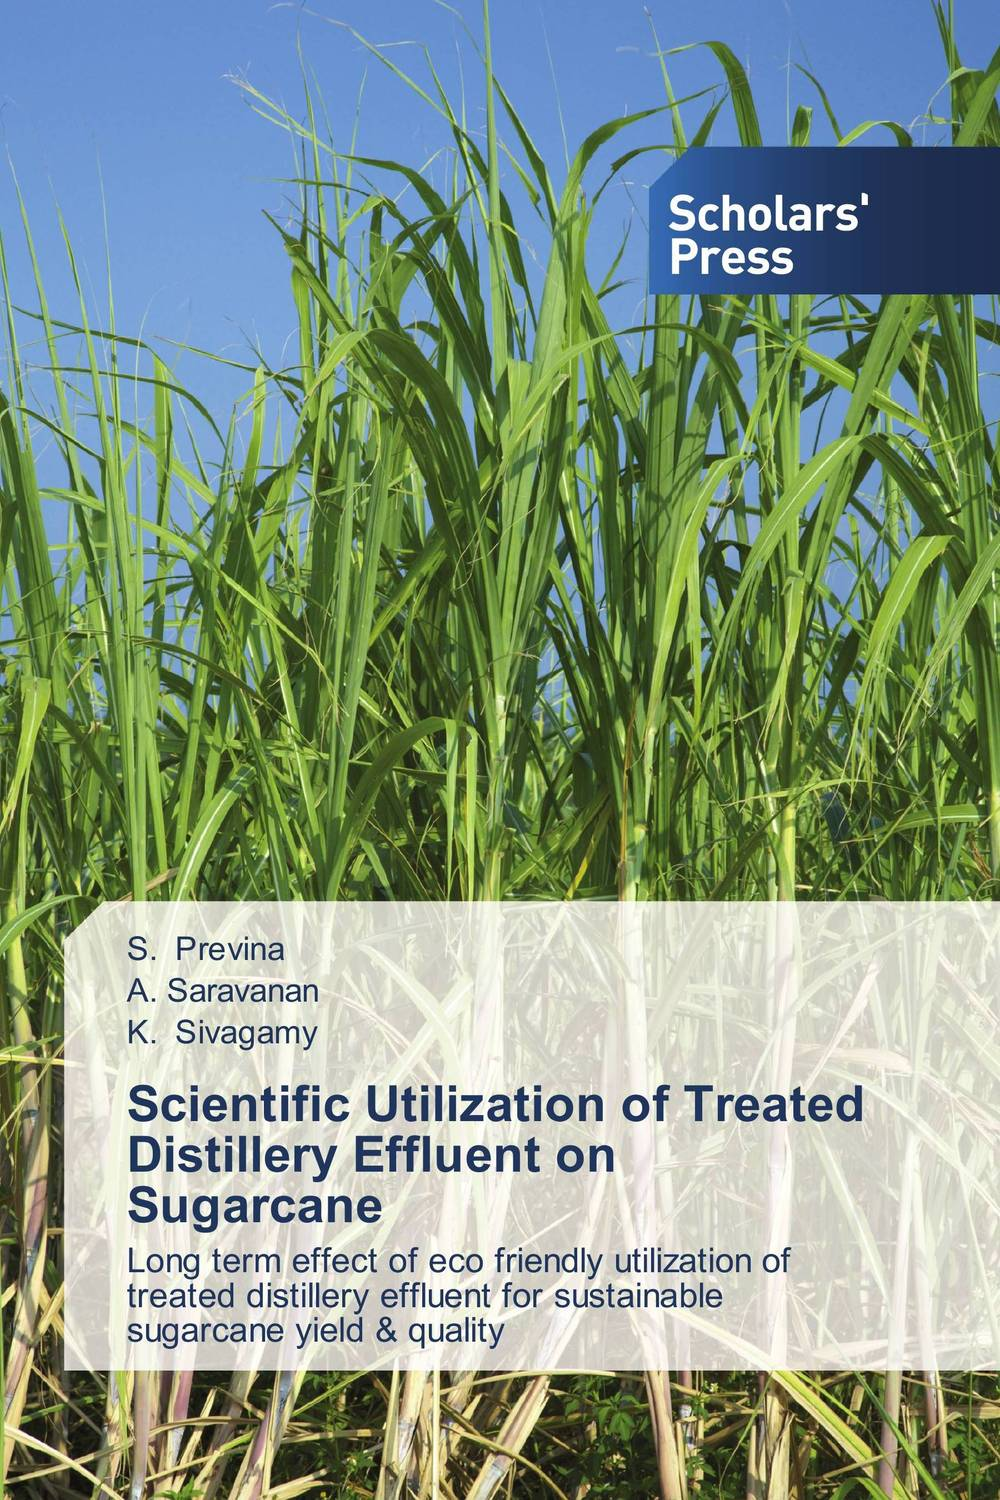 Scientific Utilization of Treated Distillery Effluent on Sugarcane scientific and mythological ways of knowing in anthropology